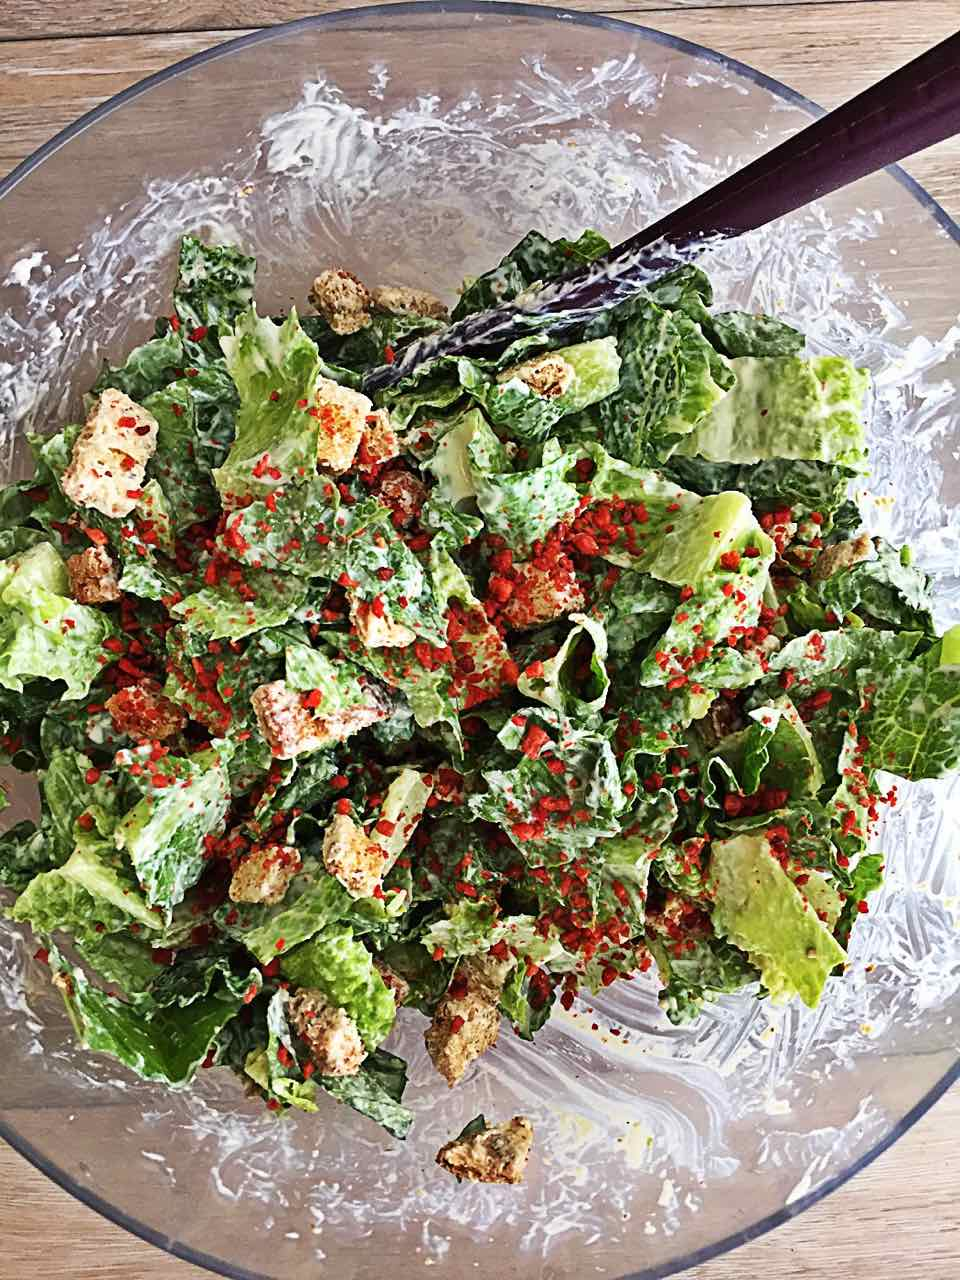 Image of Vegan Caesar Salad with Imitation Bacon Bits in a large salad bowl.